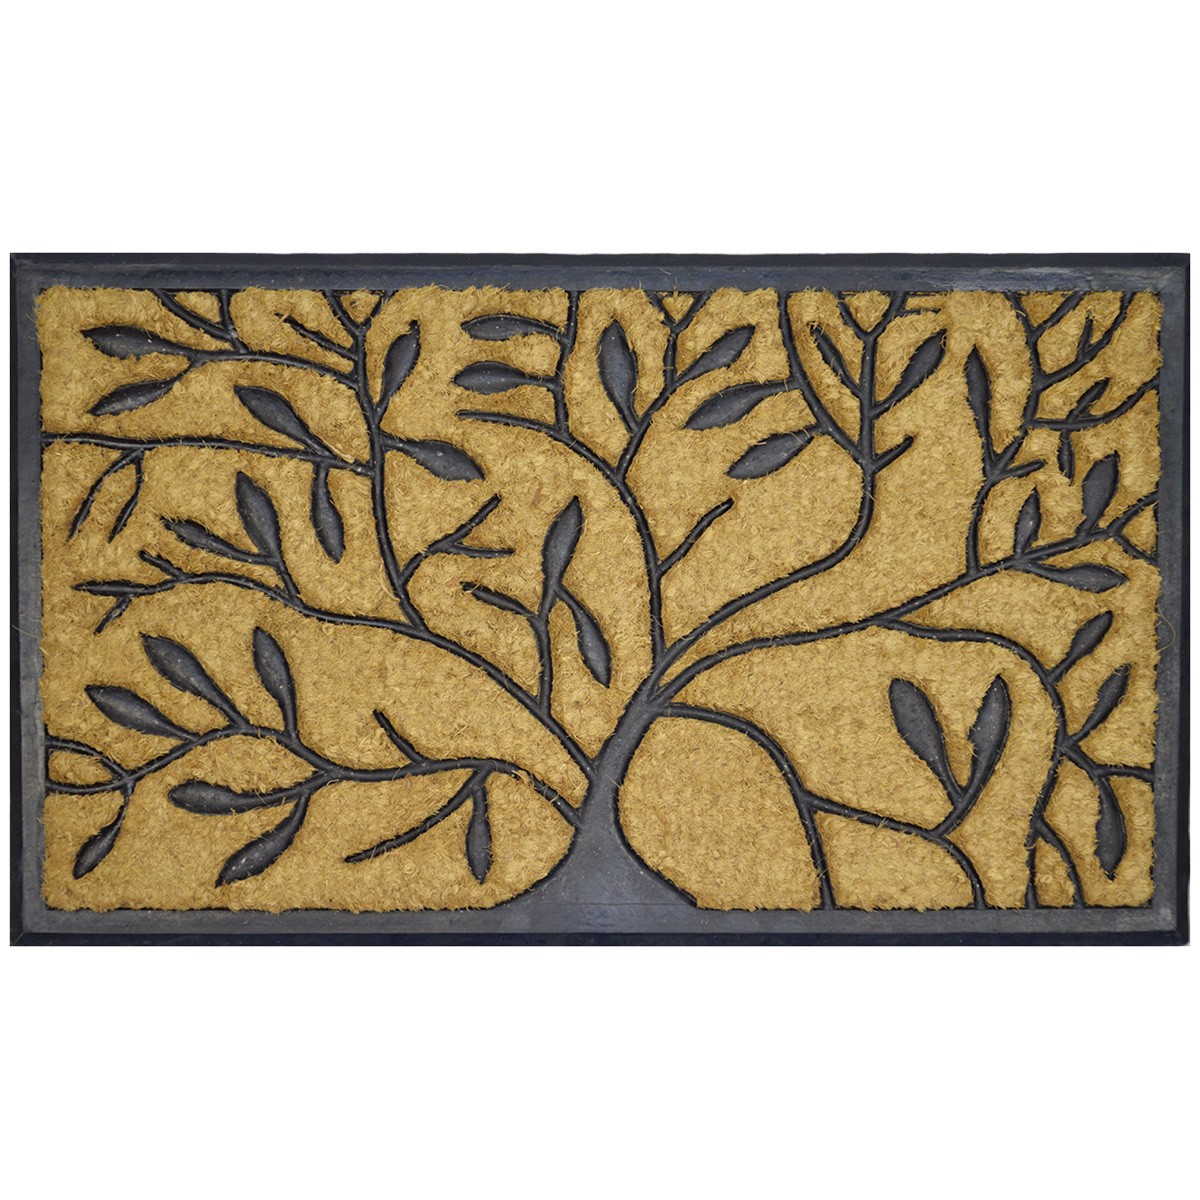 Tree Pattern Coir & Rubber Doormat, 75x45cm